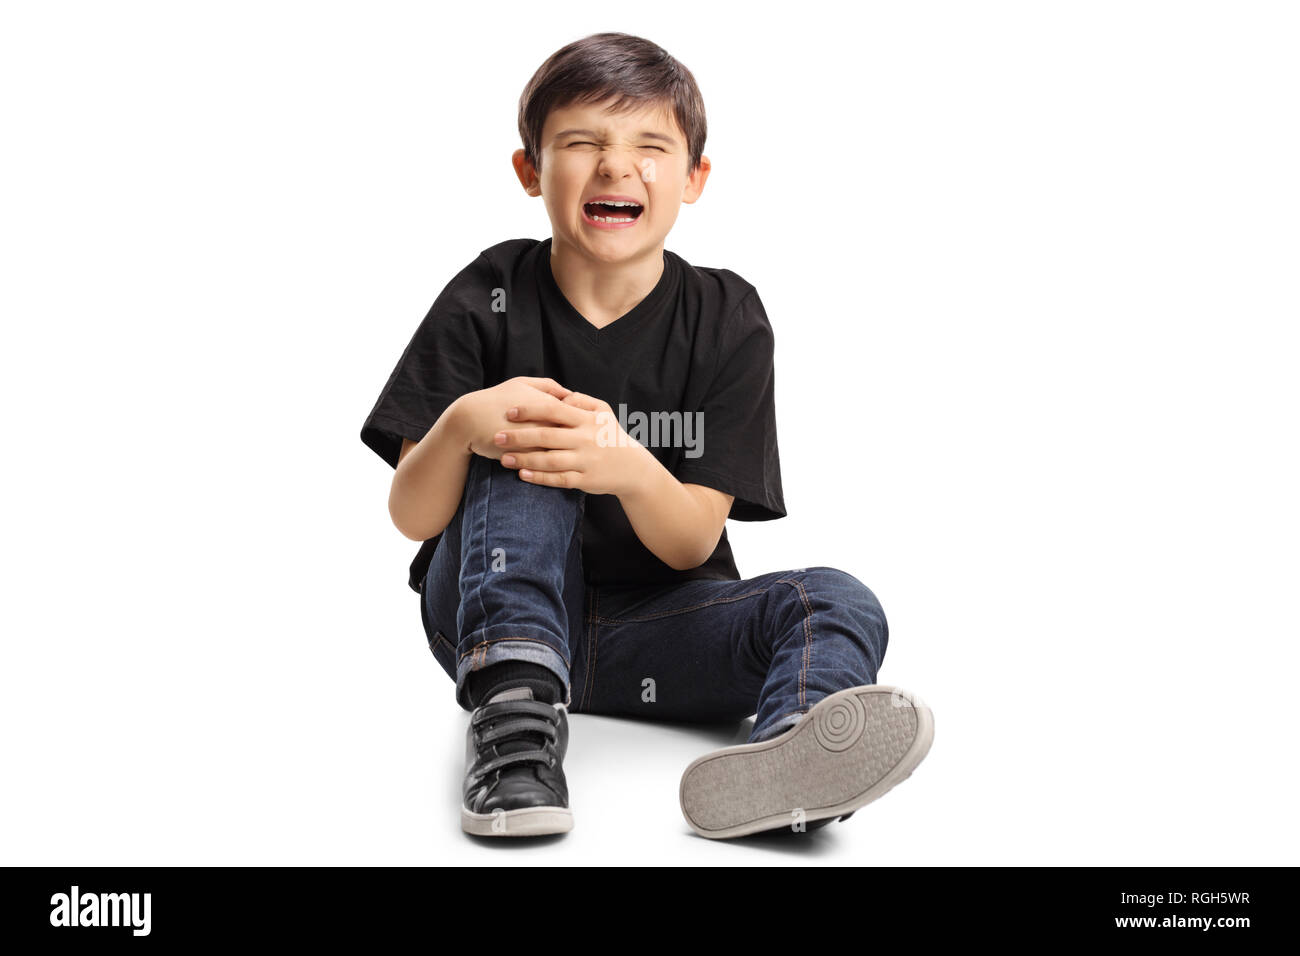 A boy sitting on the floor in pain, holding his knee and crying isolated on white background - Stock Image